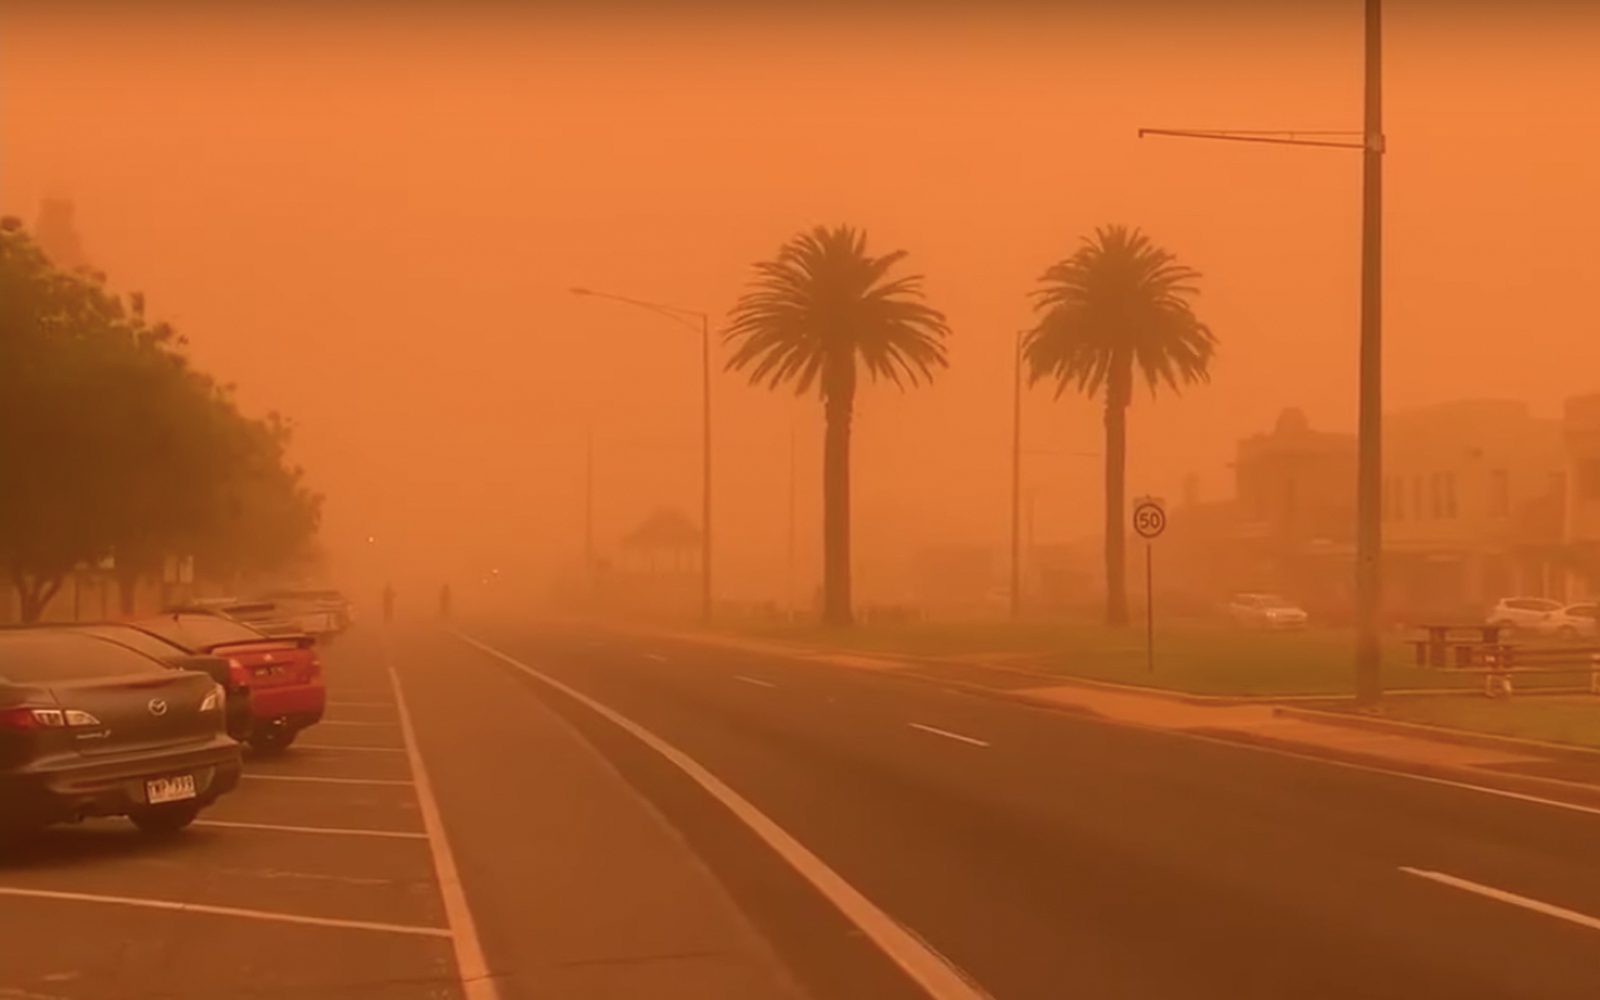 Skies of this Australian city turned red due to a massive dust storm